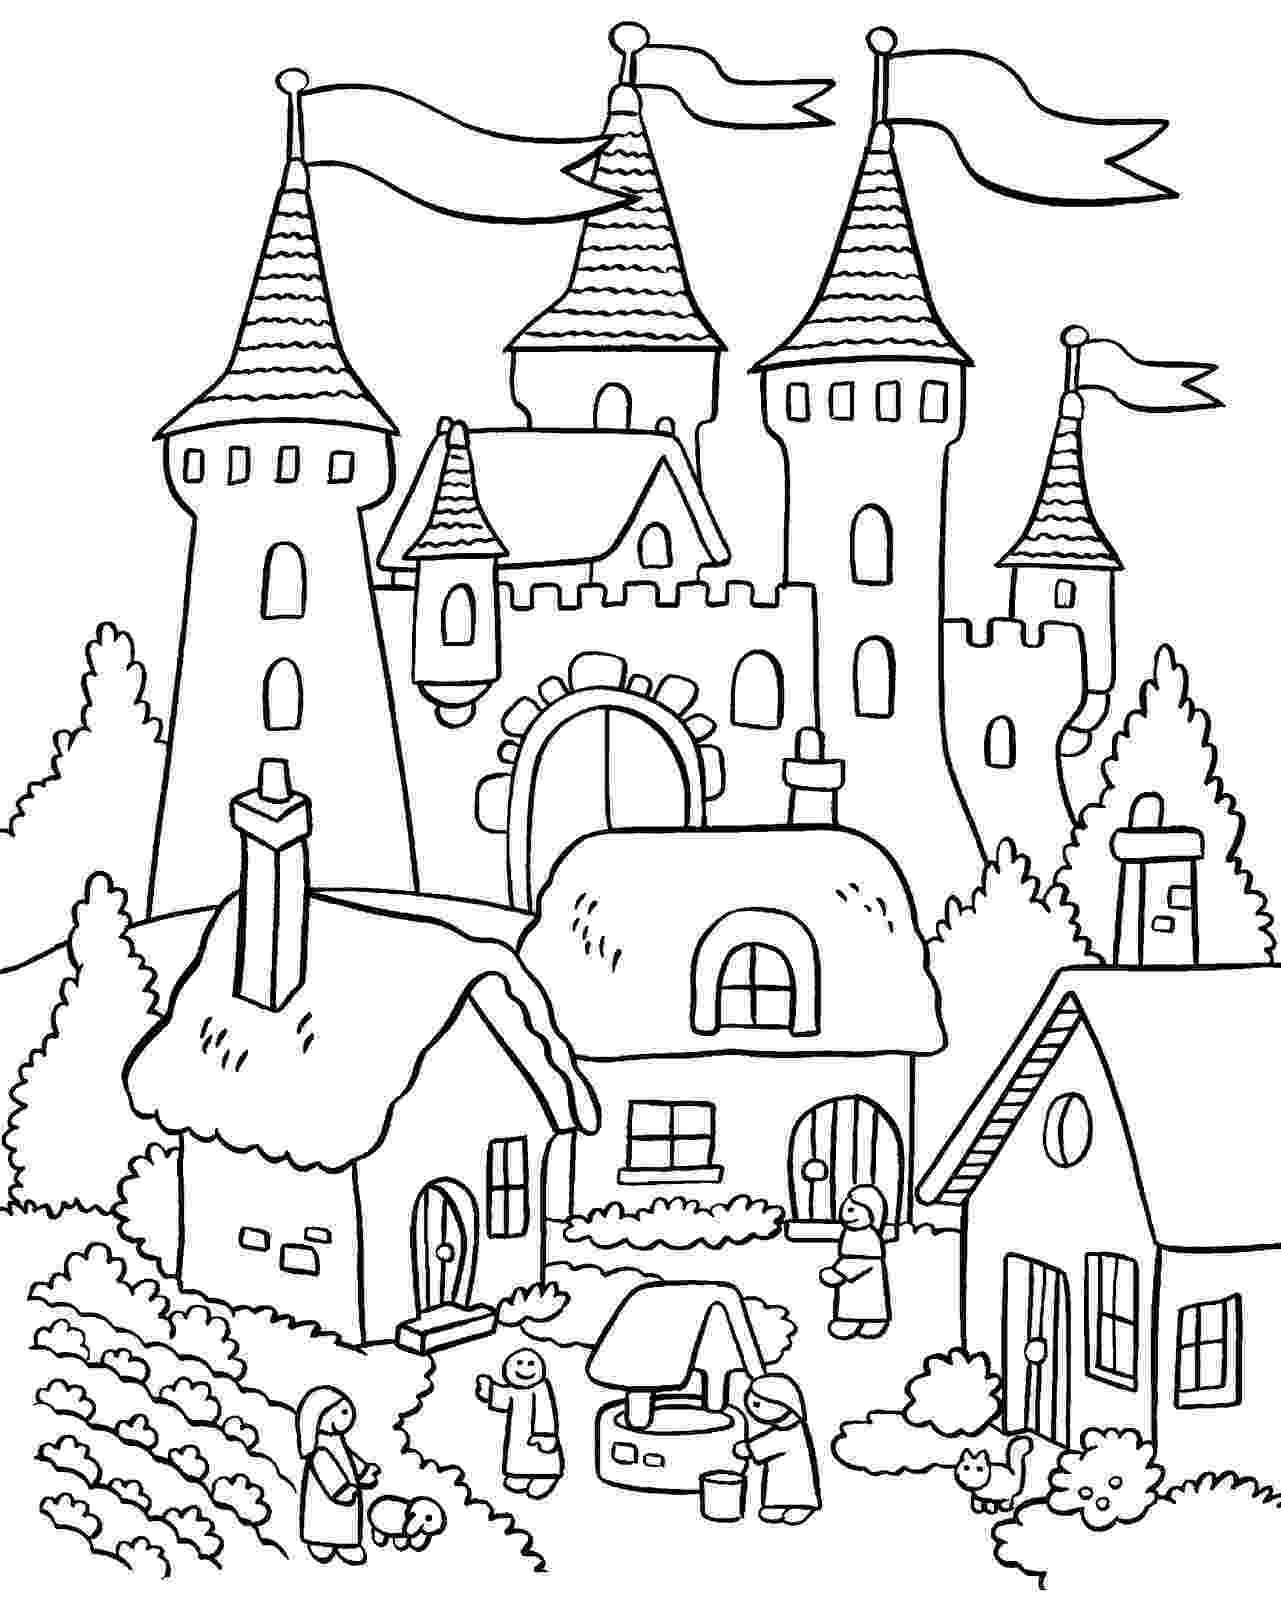 coloring pages house pin on colorings coloring house pages